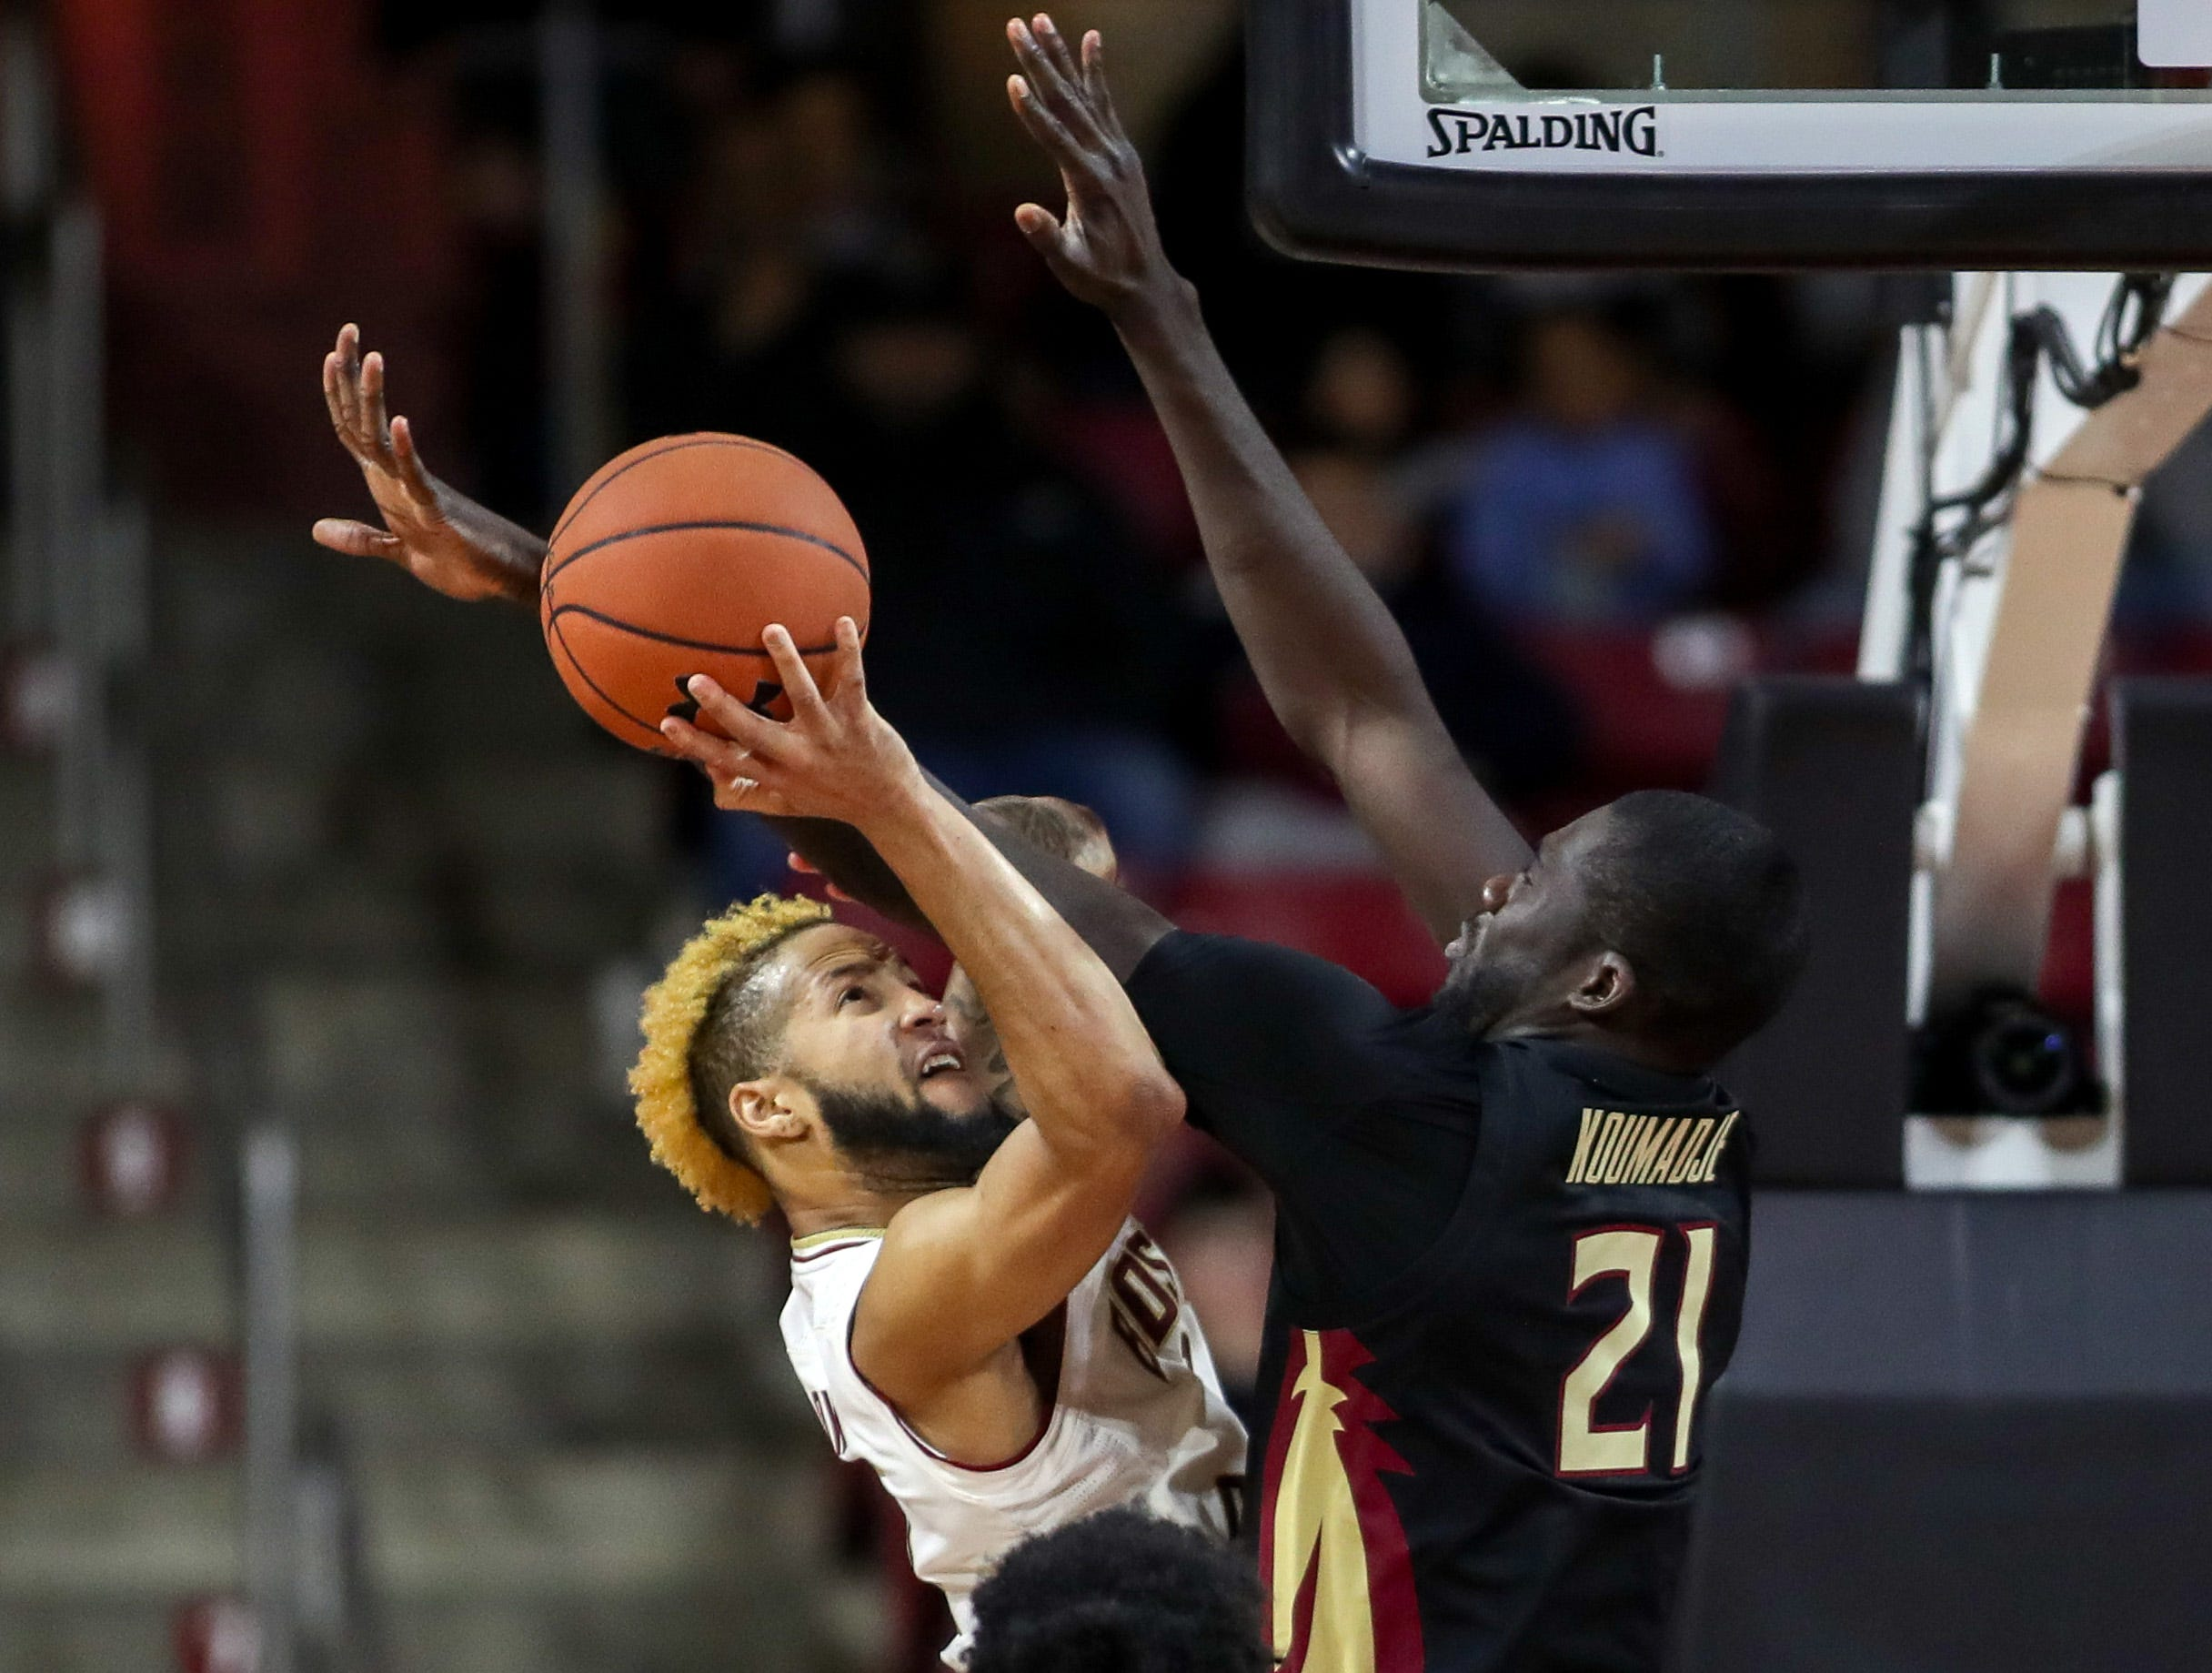 Jan 20, 2019; Chestnut Hill, MA, USA; Boston College Eagles guard Ky Bowman (0) shoots against Florida State Seminoles center Christ Koumadje (21) at Conte Forum. Mandatory Credit: Paul Rutherford-USA TODAY Sports